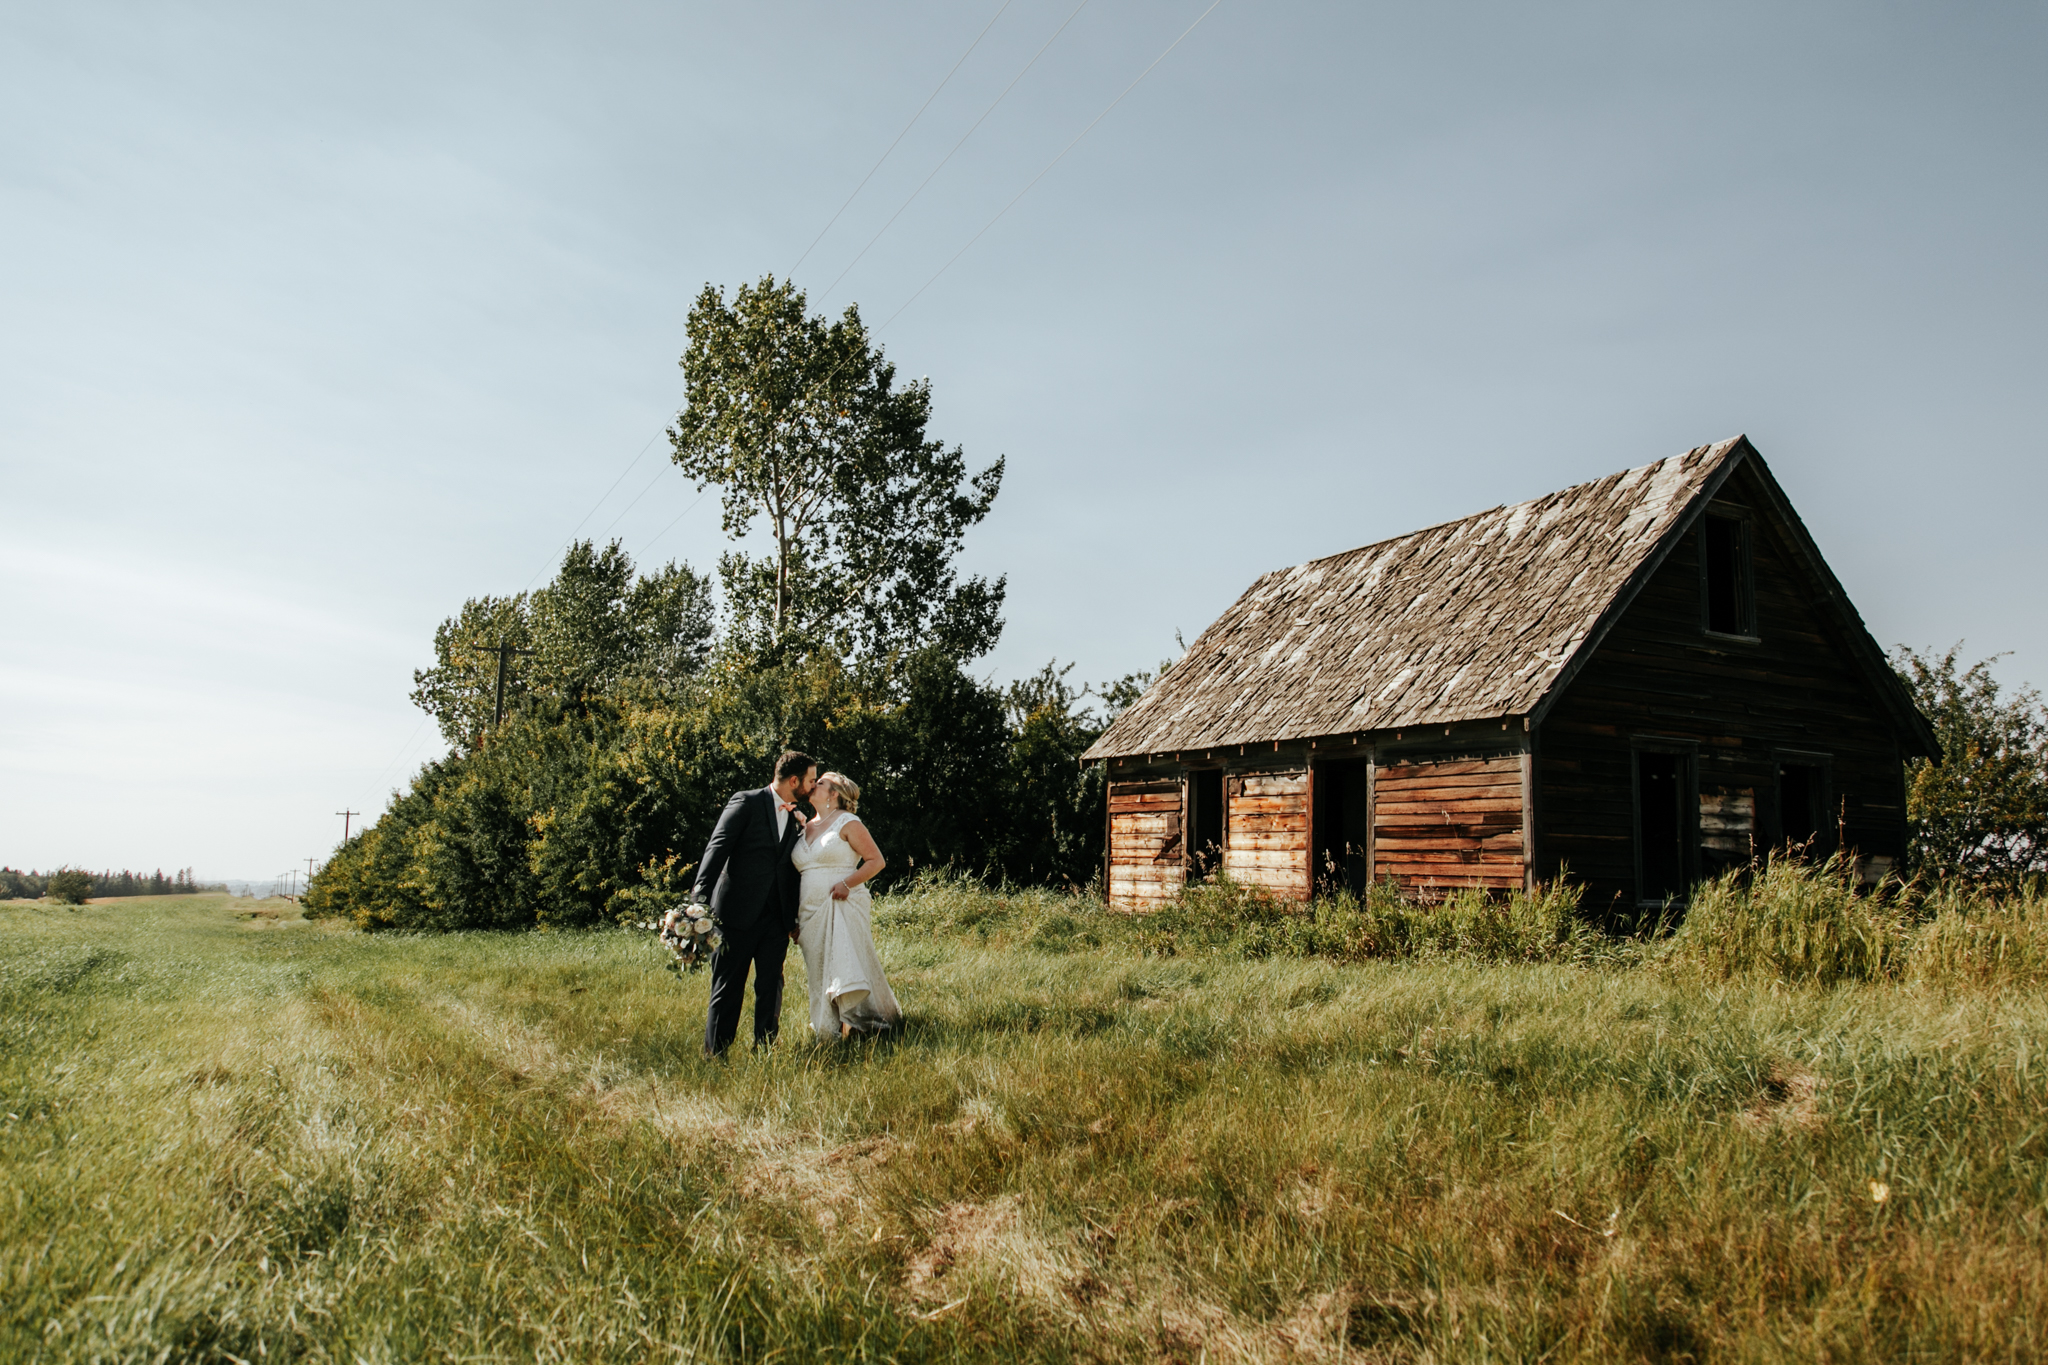 red-deer-wedding-photographer-love-and-be-loved-photography-emily-gab-photo-image-picture-145.jpg